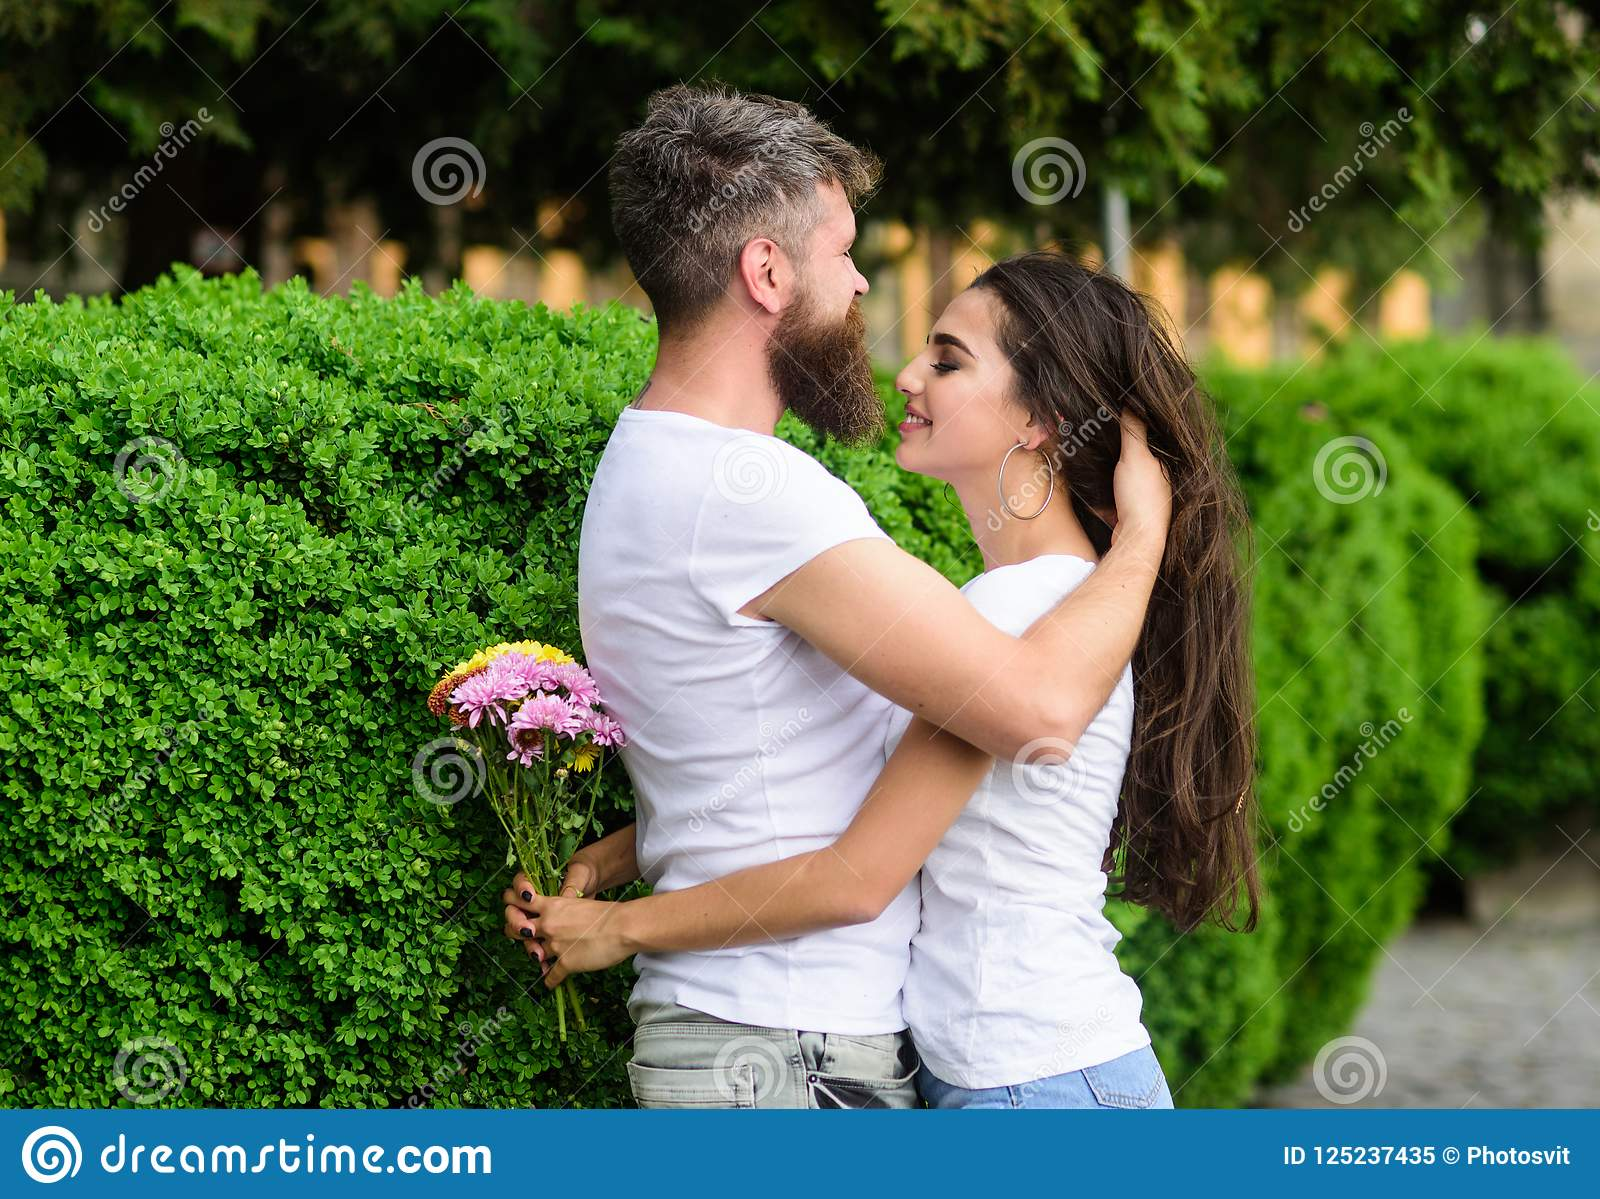 how to become a romantic man